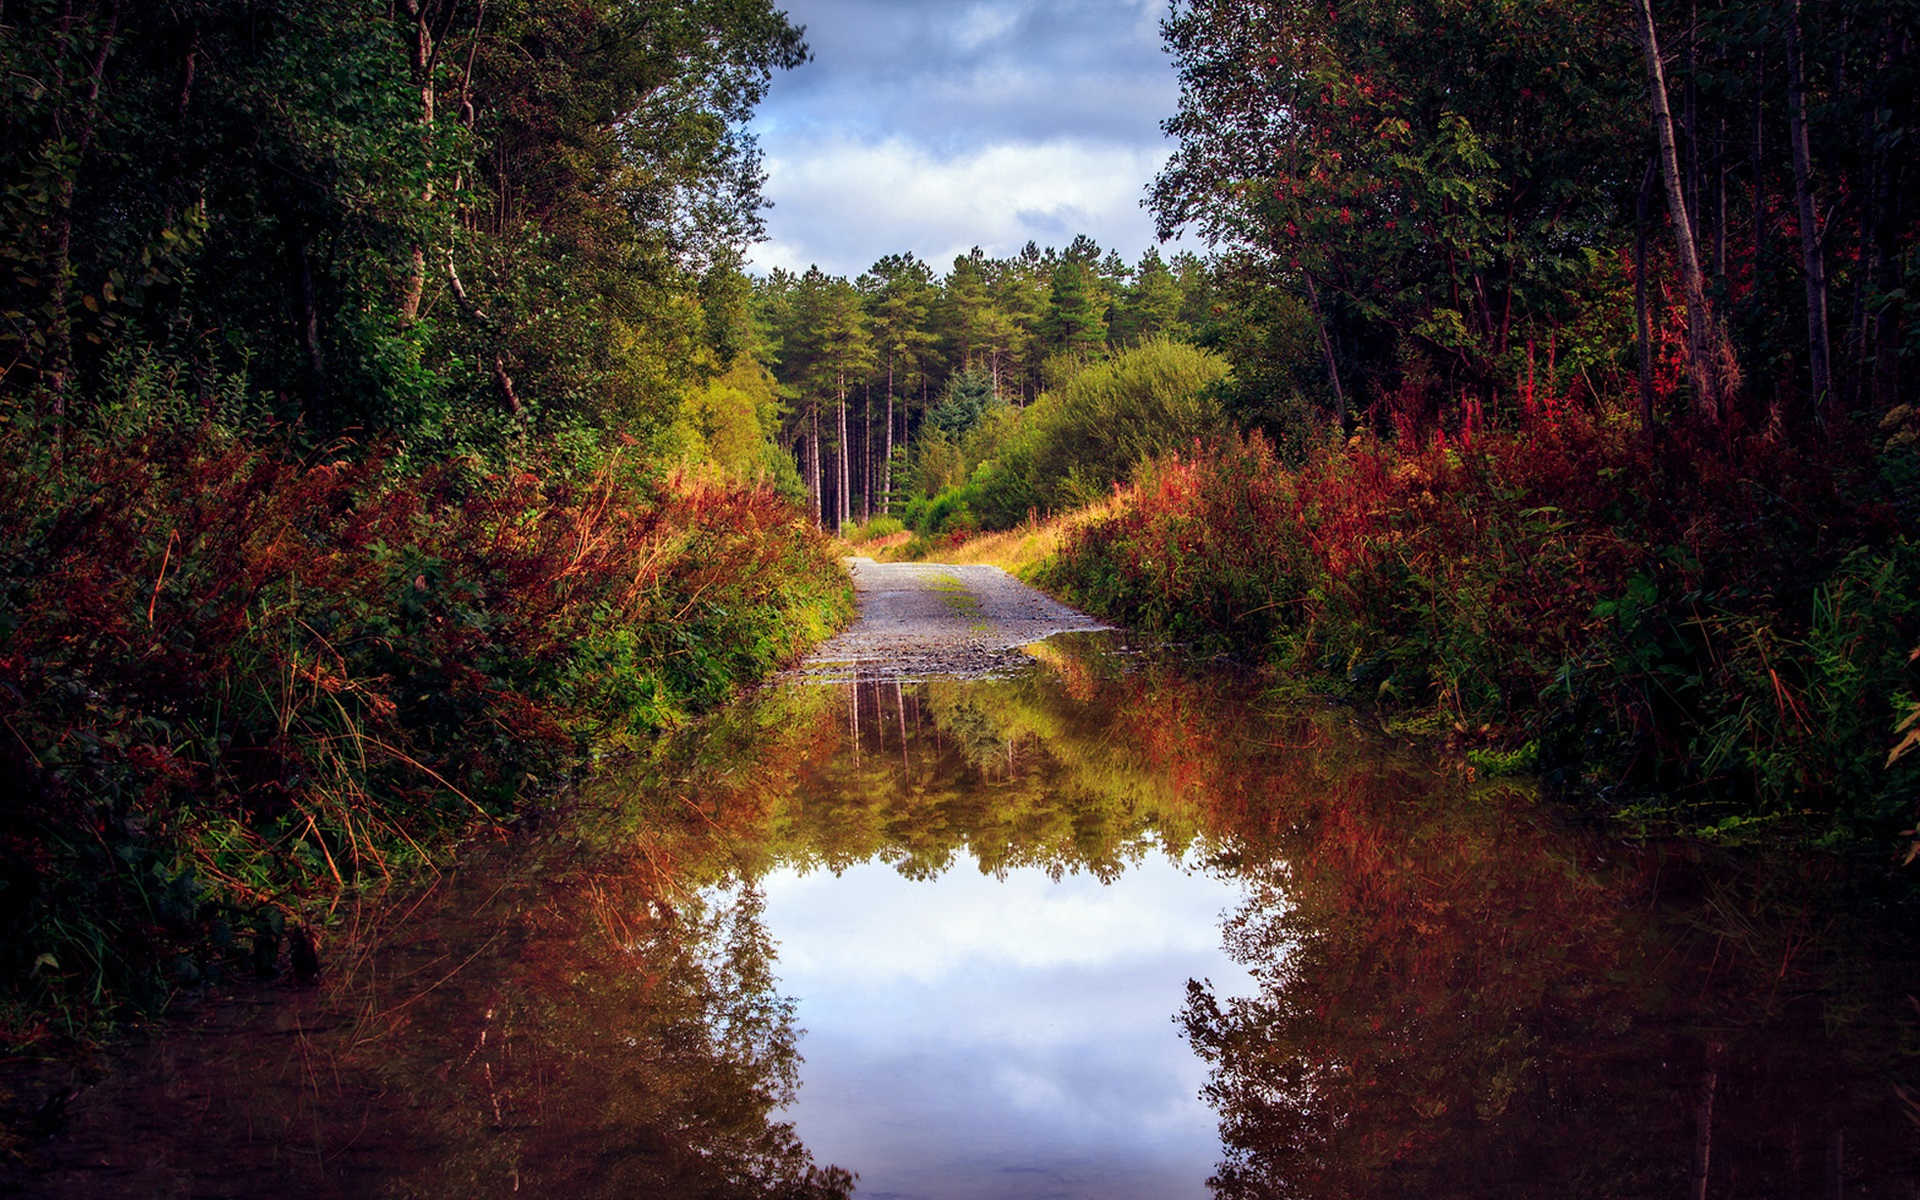 Fall Fantasy Wallpaper Nature Scenery Autumn Road Forest Trees Water Puddle